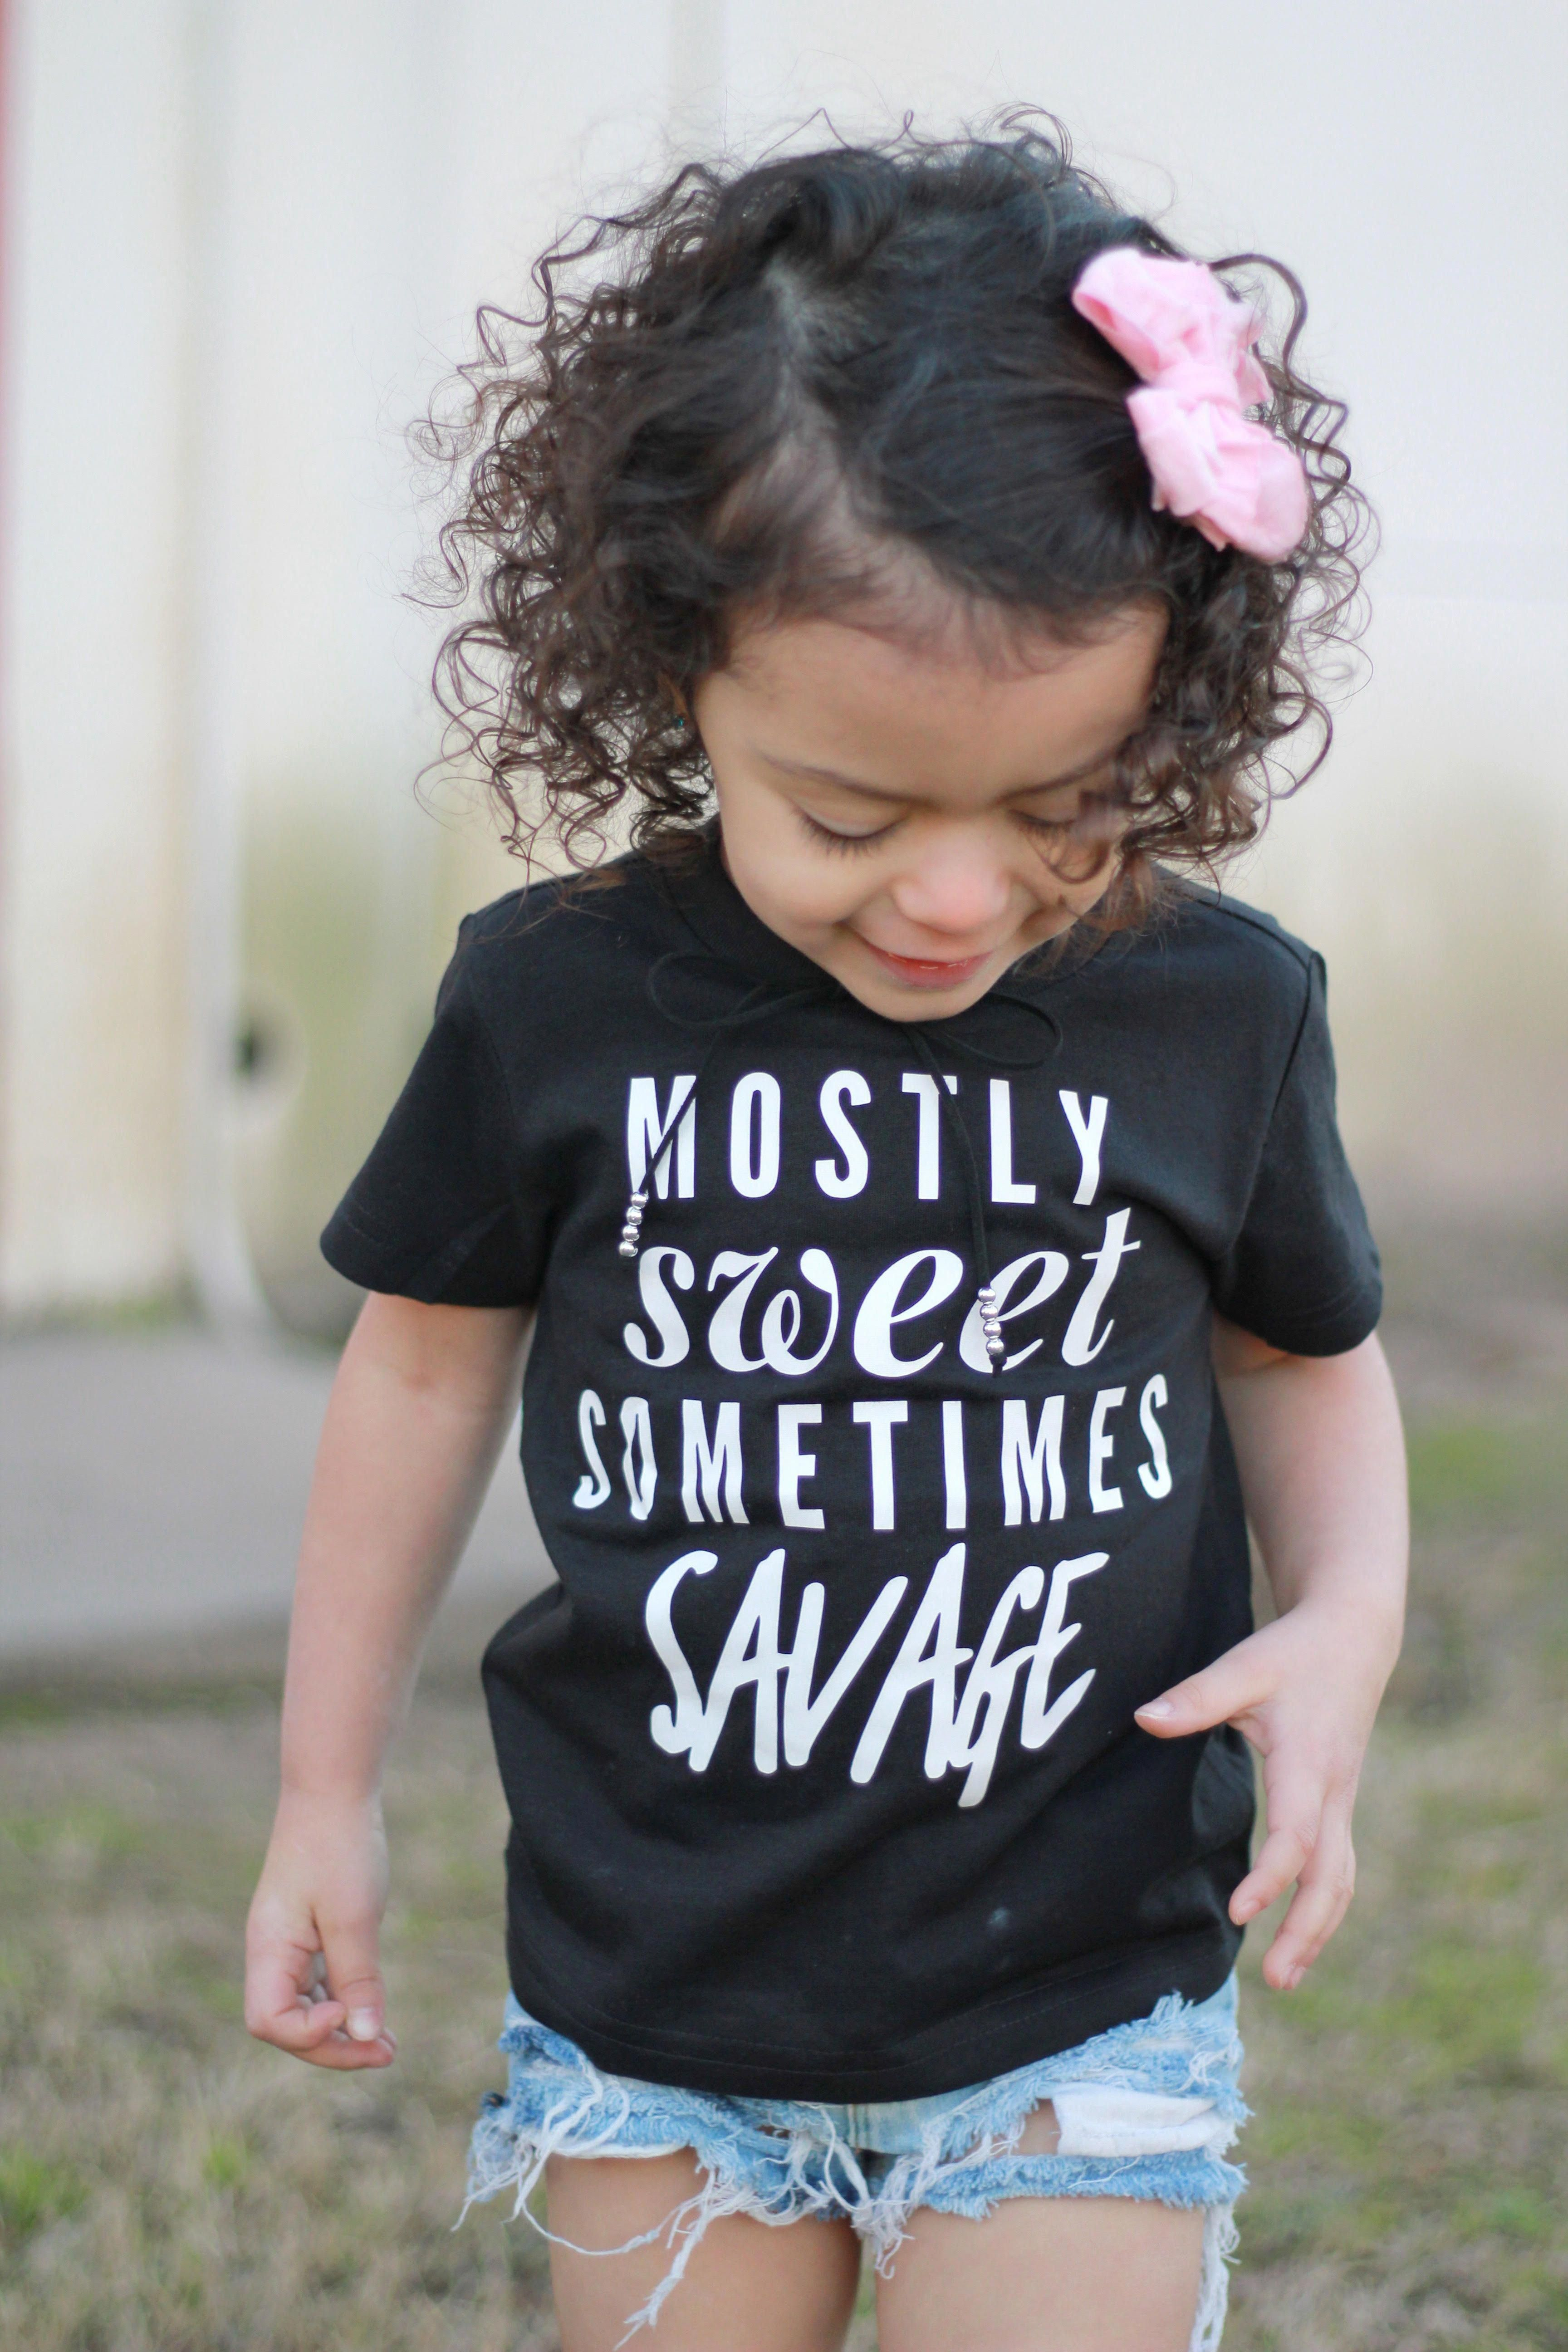 Girl Graphic Urban Style Kids Clothes Trendy Toddler Tee Boy Graphic Tee Urban Street Unisex Baby Clothes Taking it Easy Kids Tee